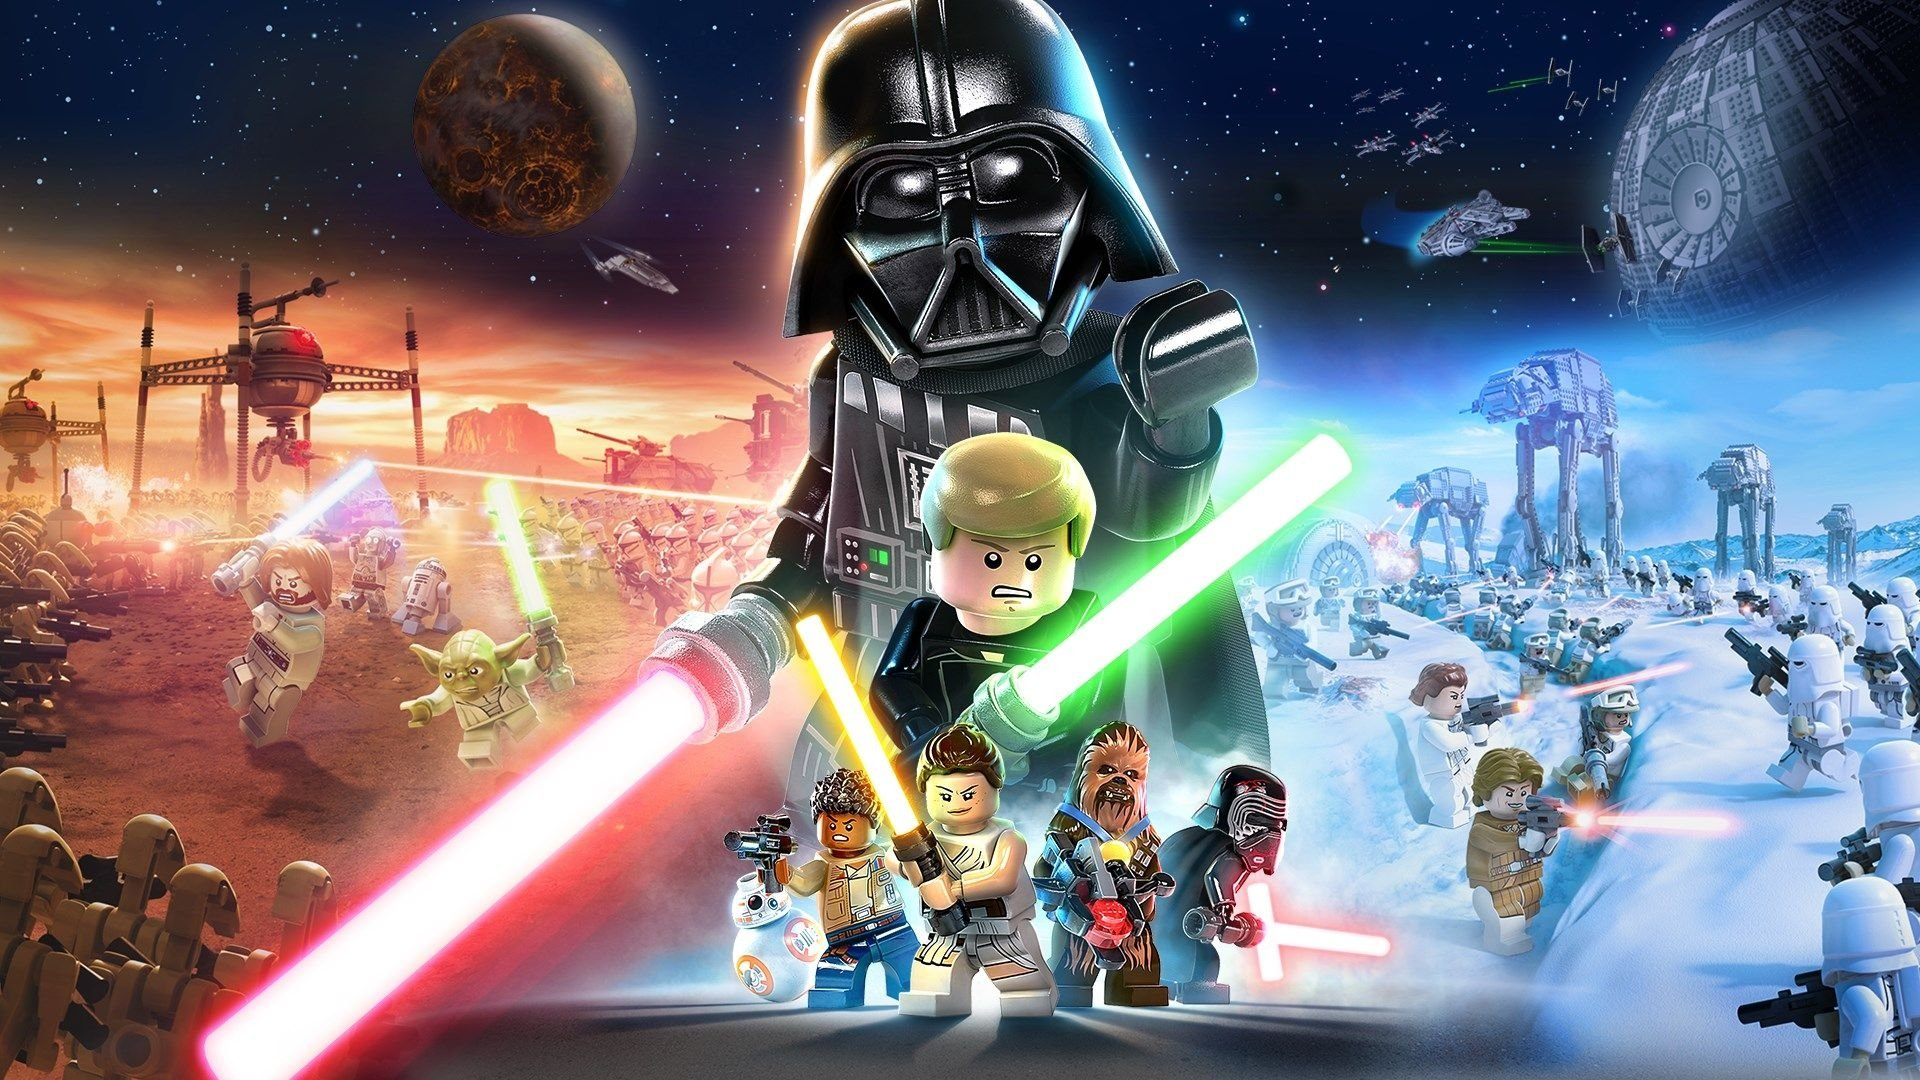 1 Lego Star Wars The Skywalker Saga Hd Wallpapers Background Images Wallpaper Abyss